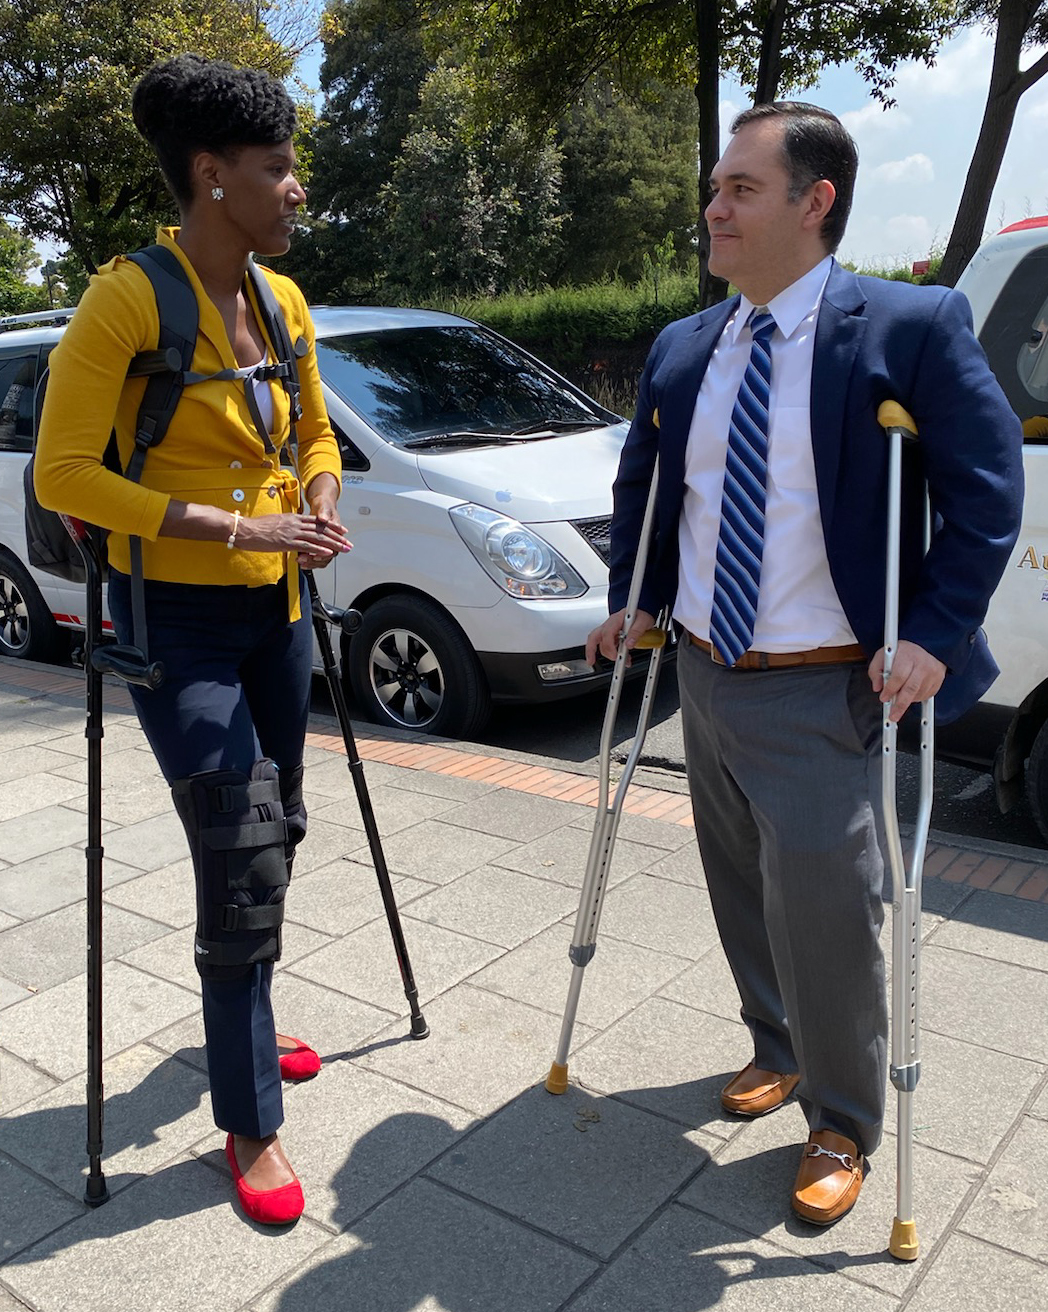 A woman and man, both on crutches, stand on sidewalk talking